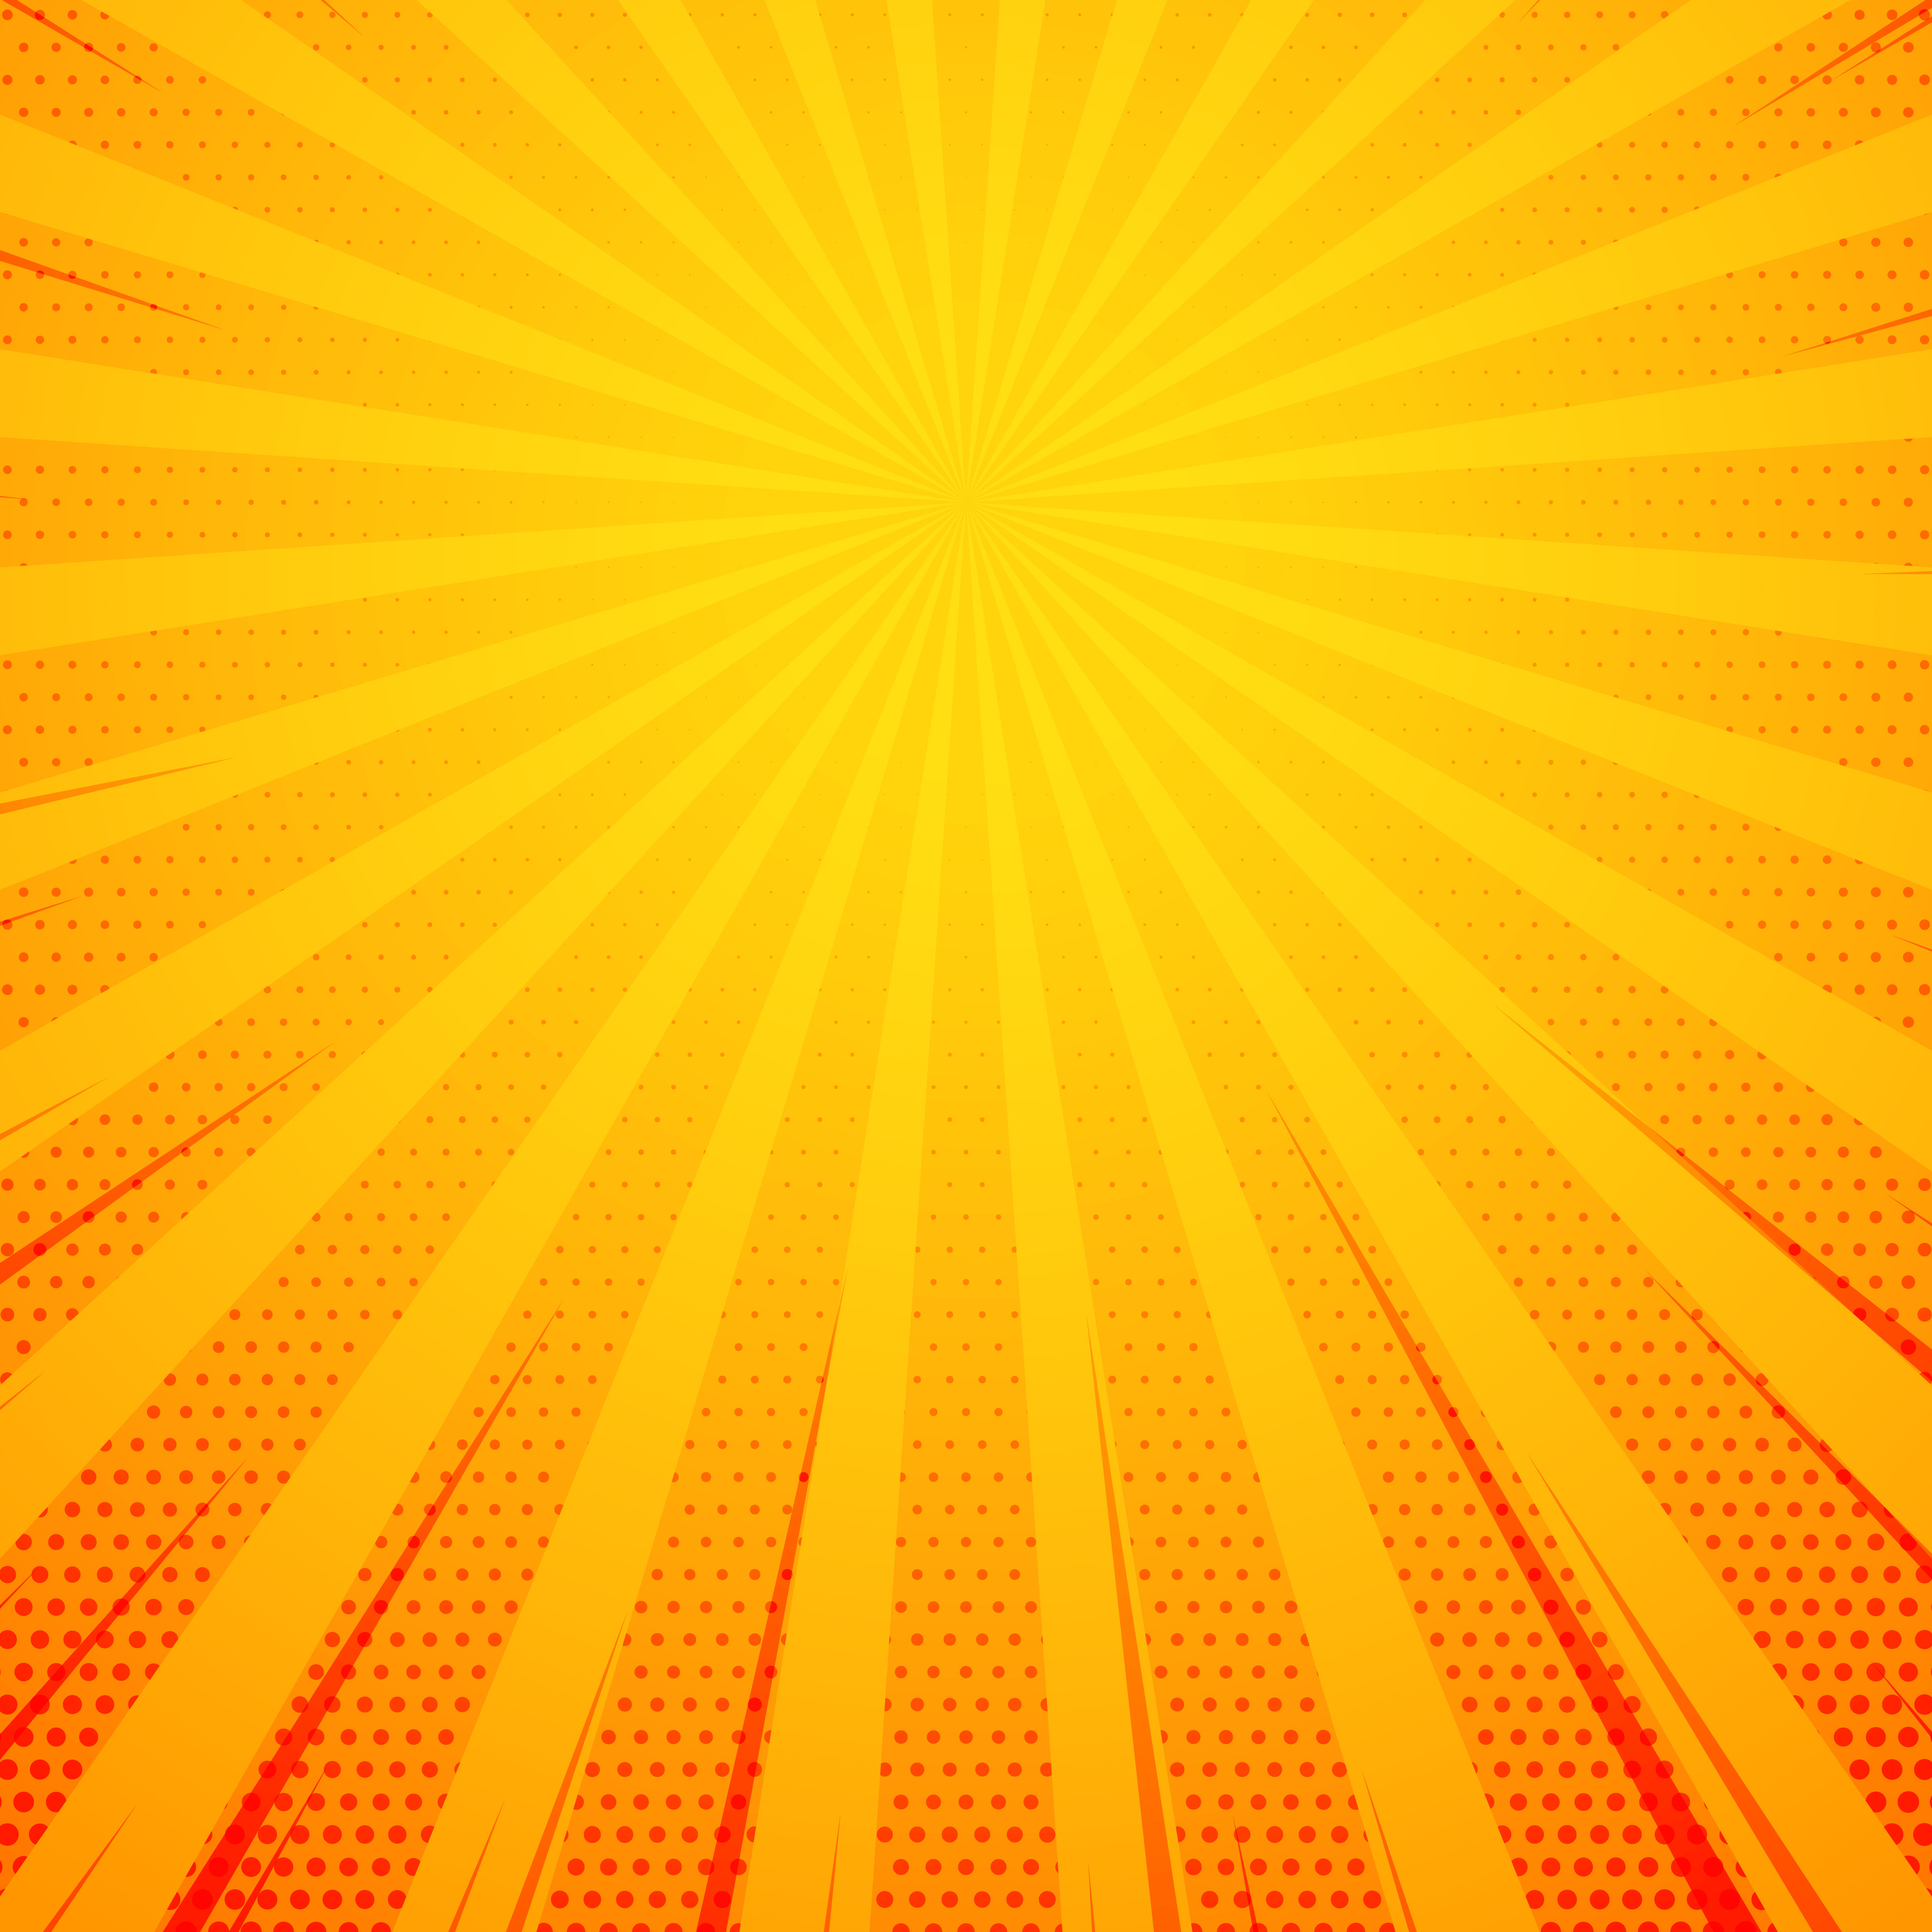 yellow pop art comic book style background with rays